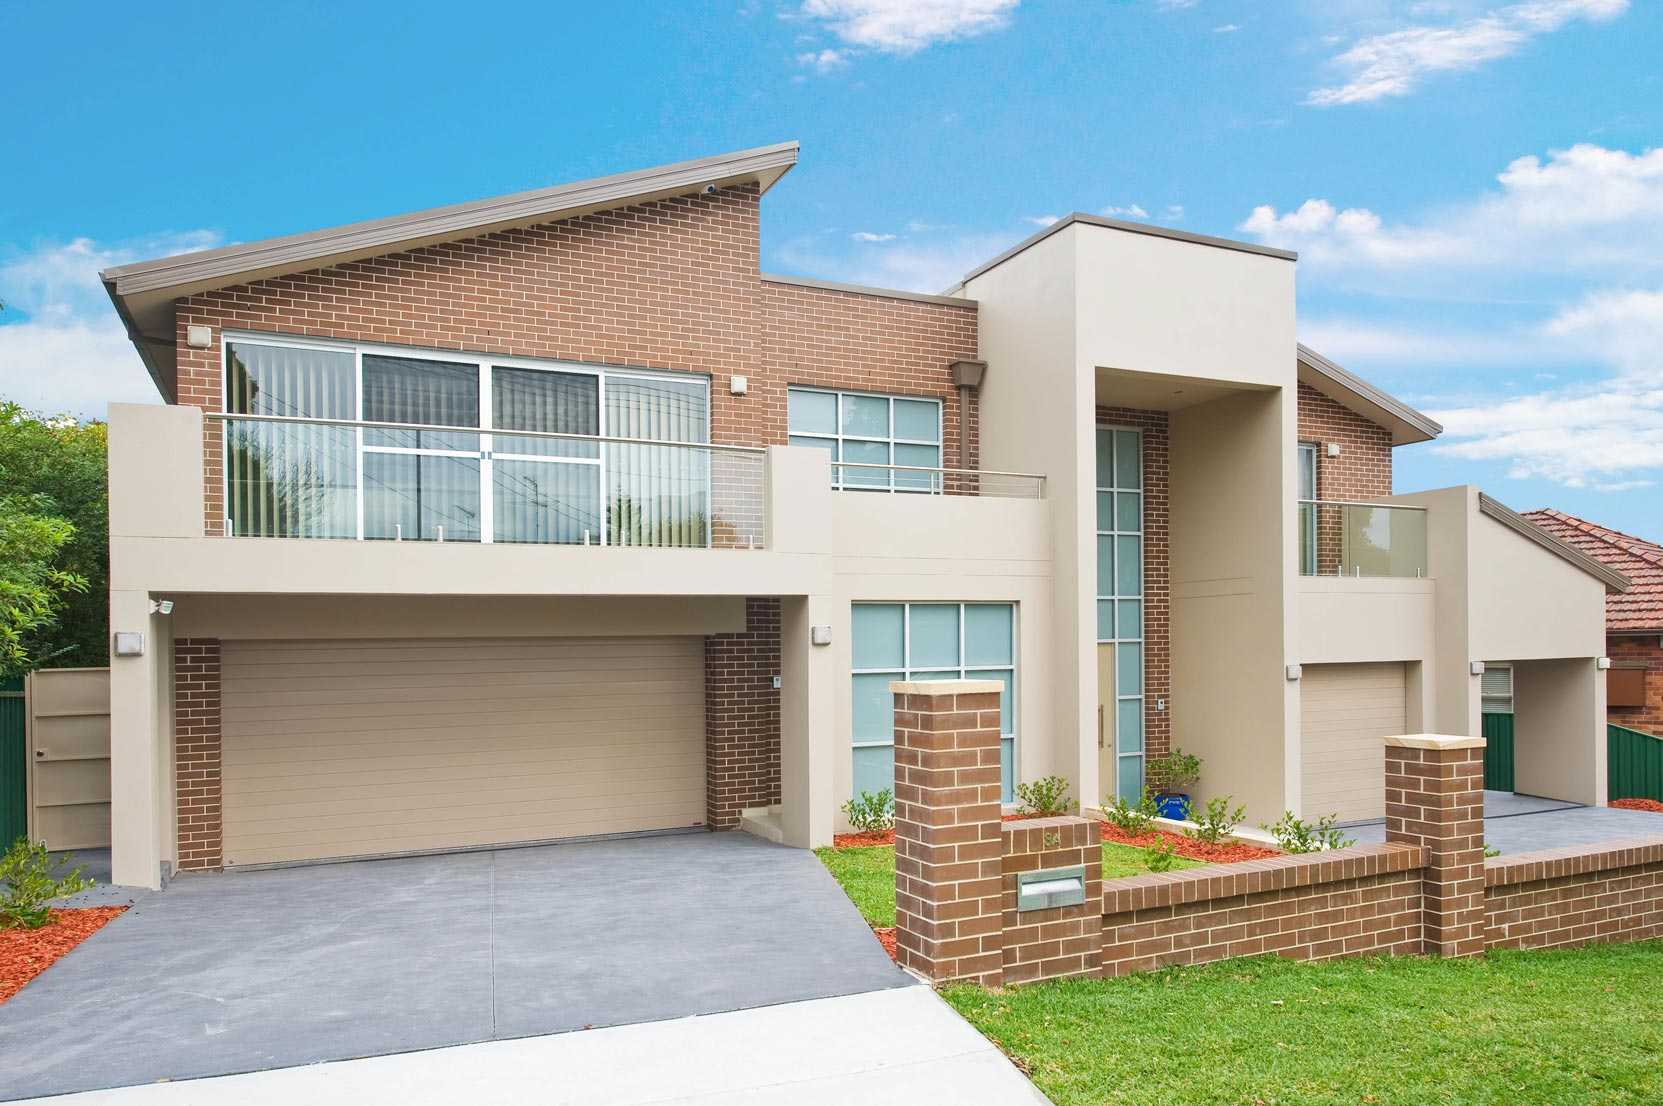 2 story residence in Epping, NSW